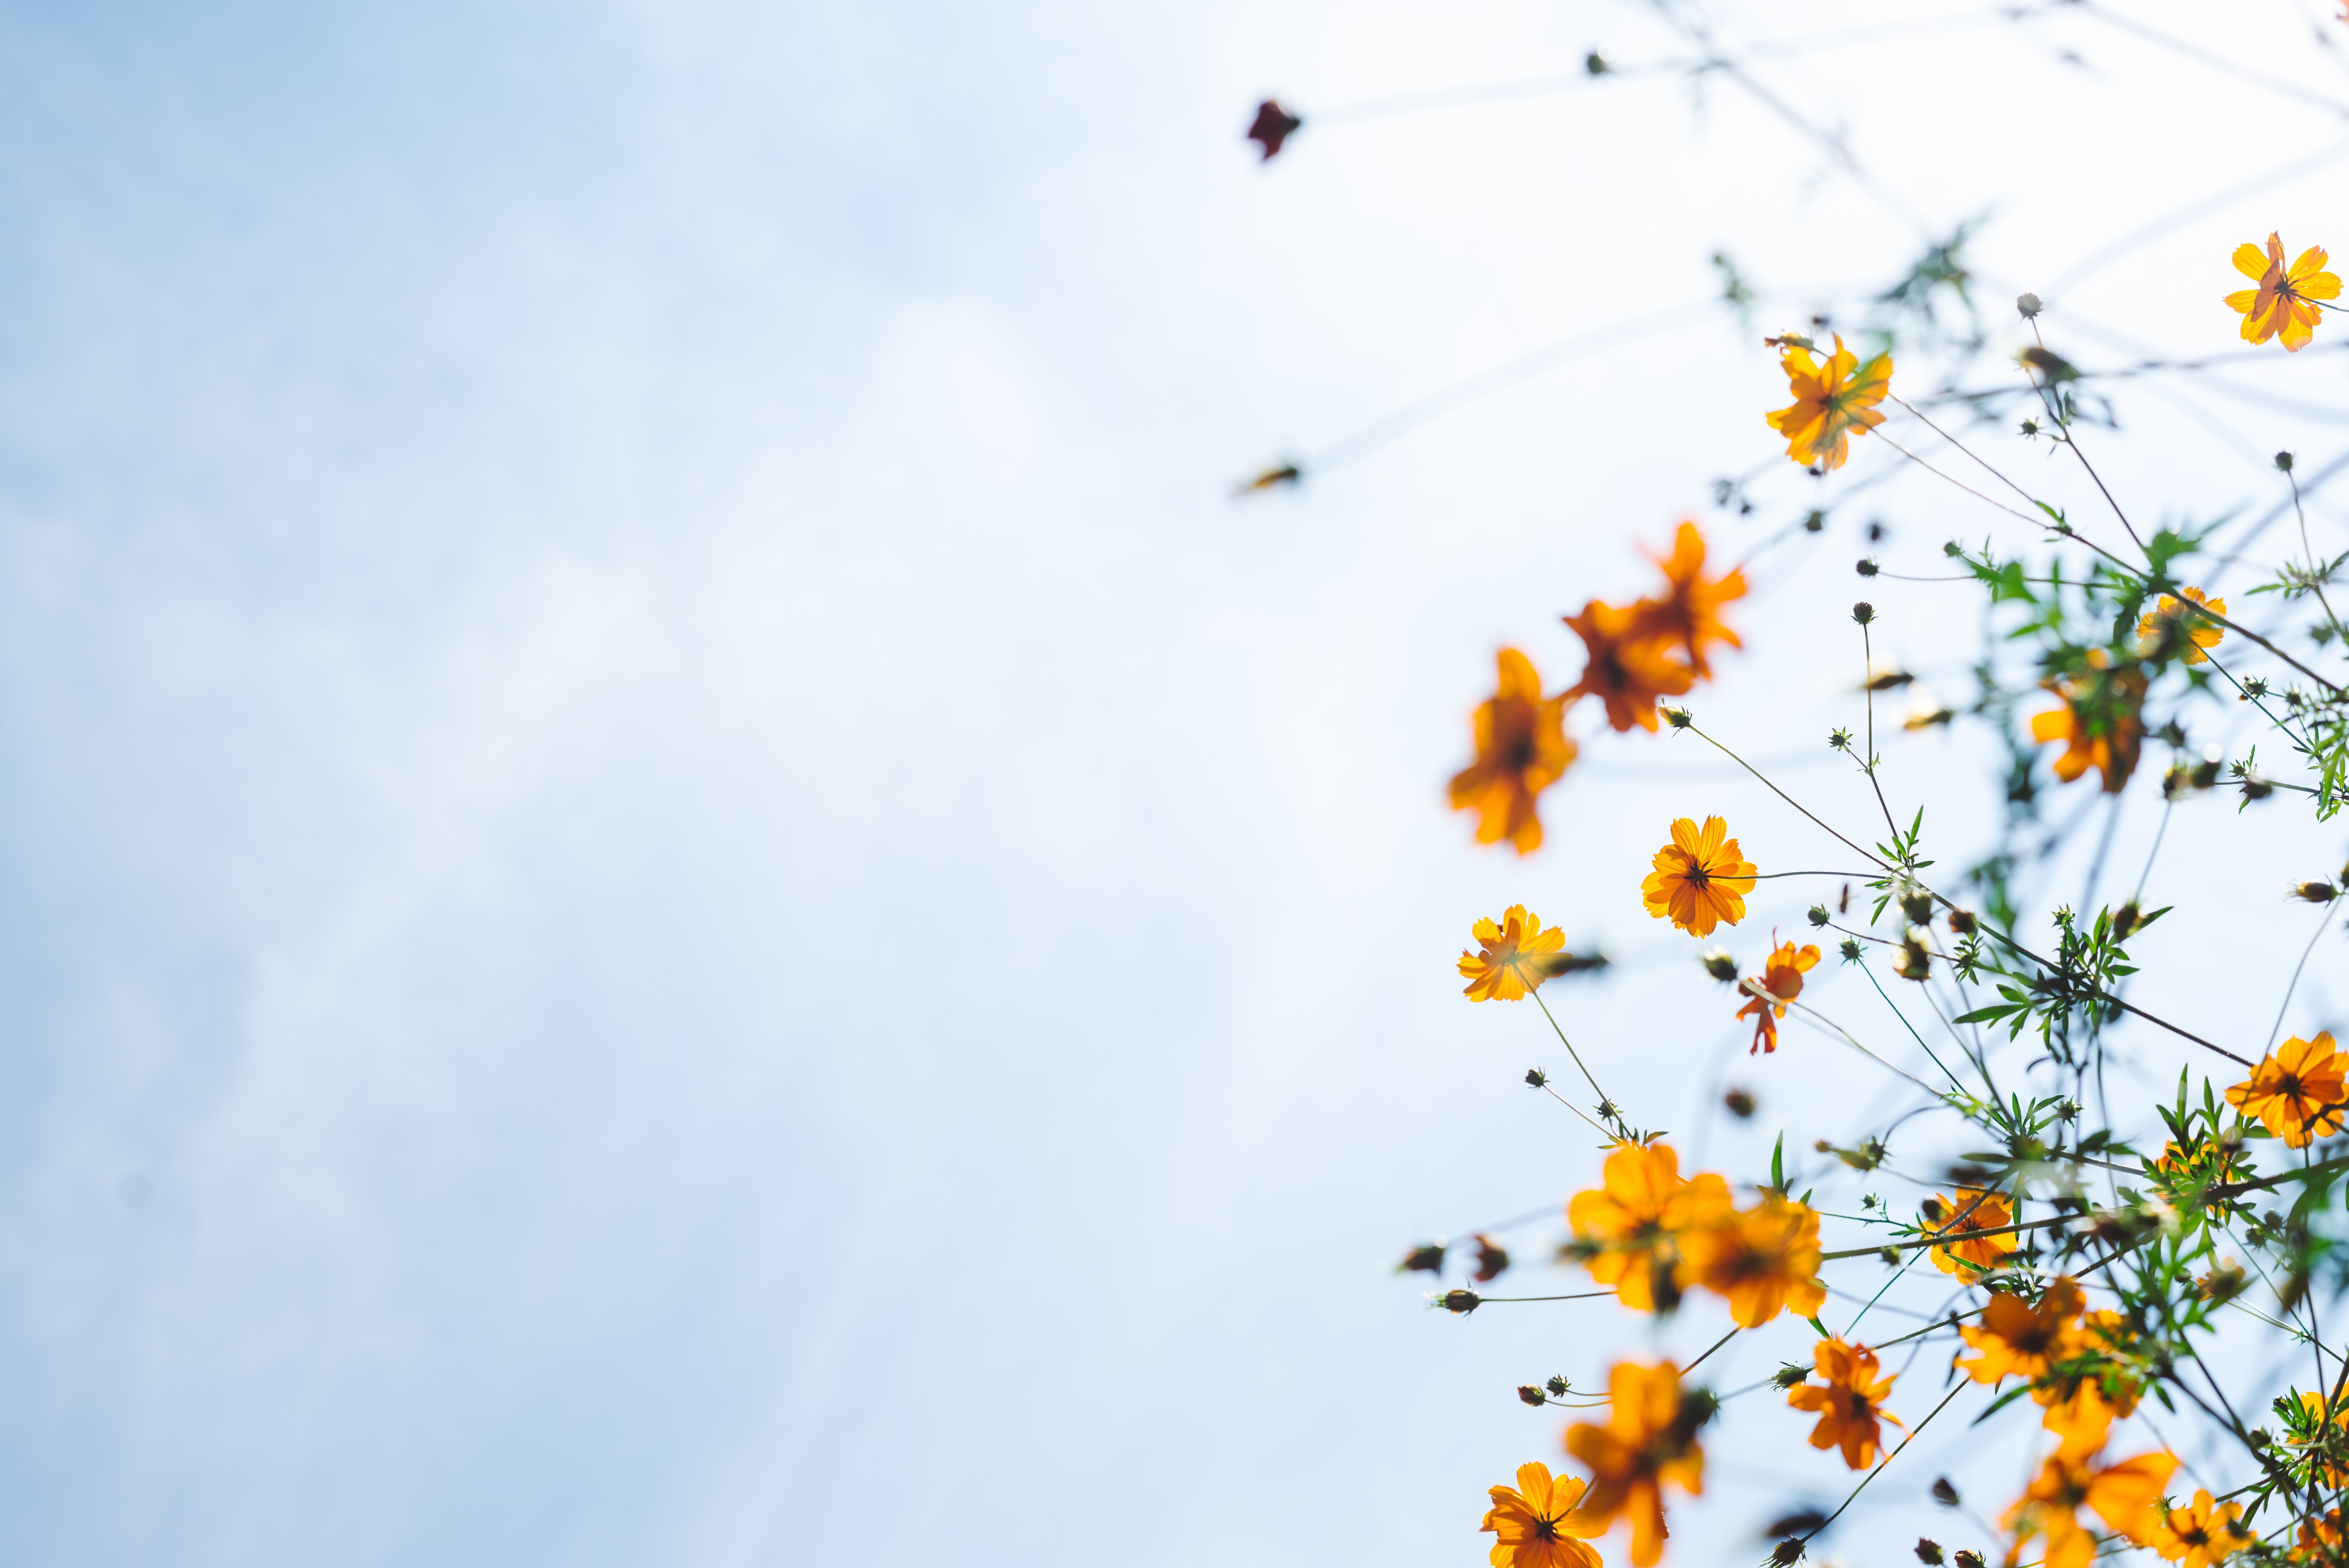 Sideways photo of budding yellow flowers against a partly cloudy sky.